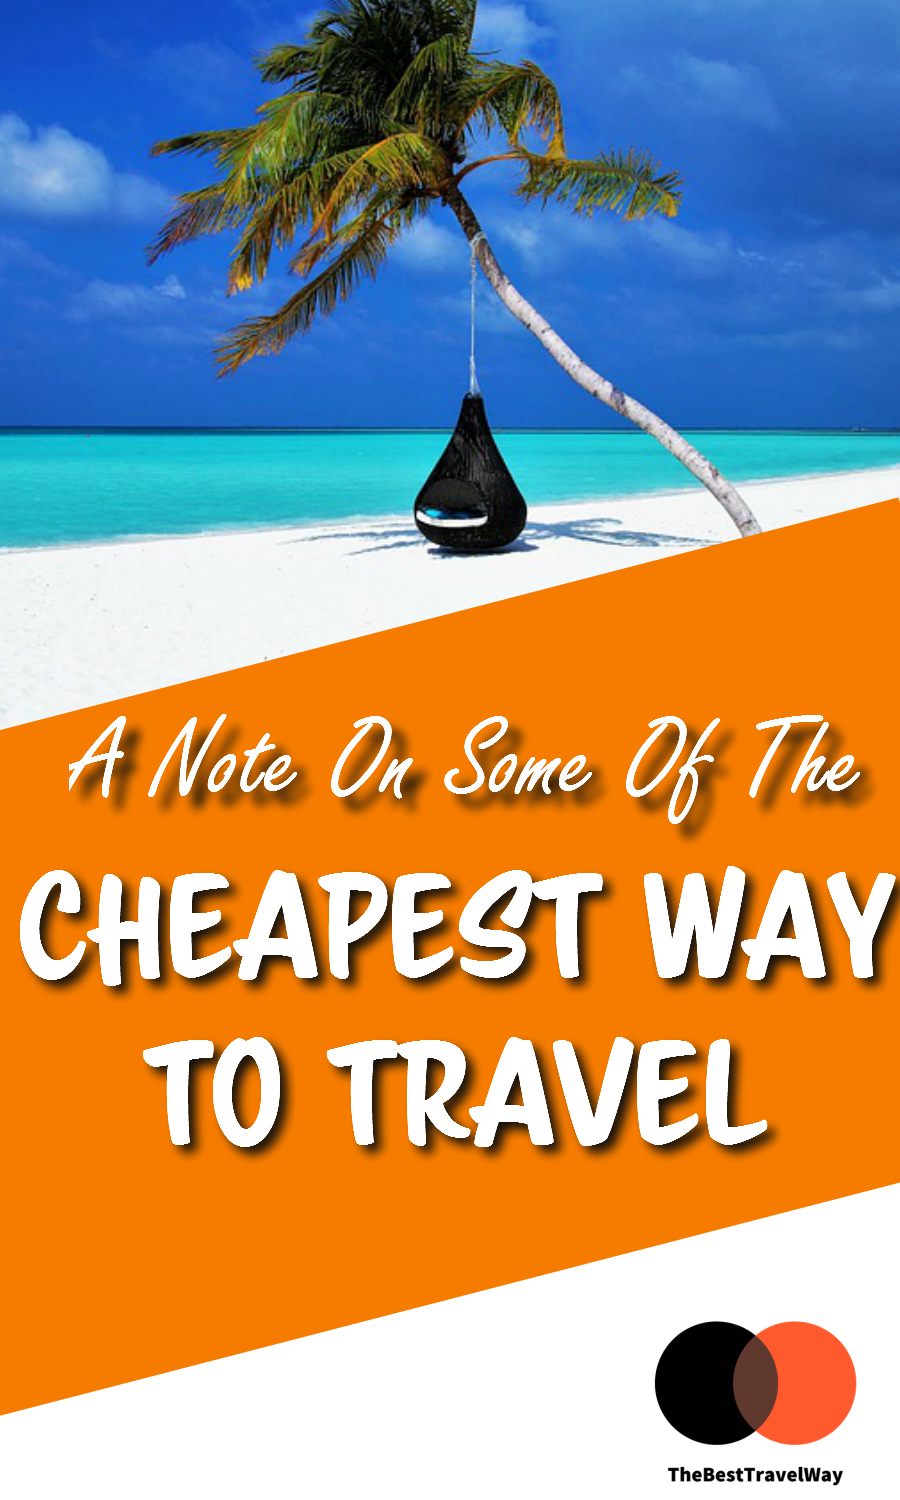 A Note on Some of the Cheapest Way to Travel